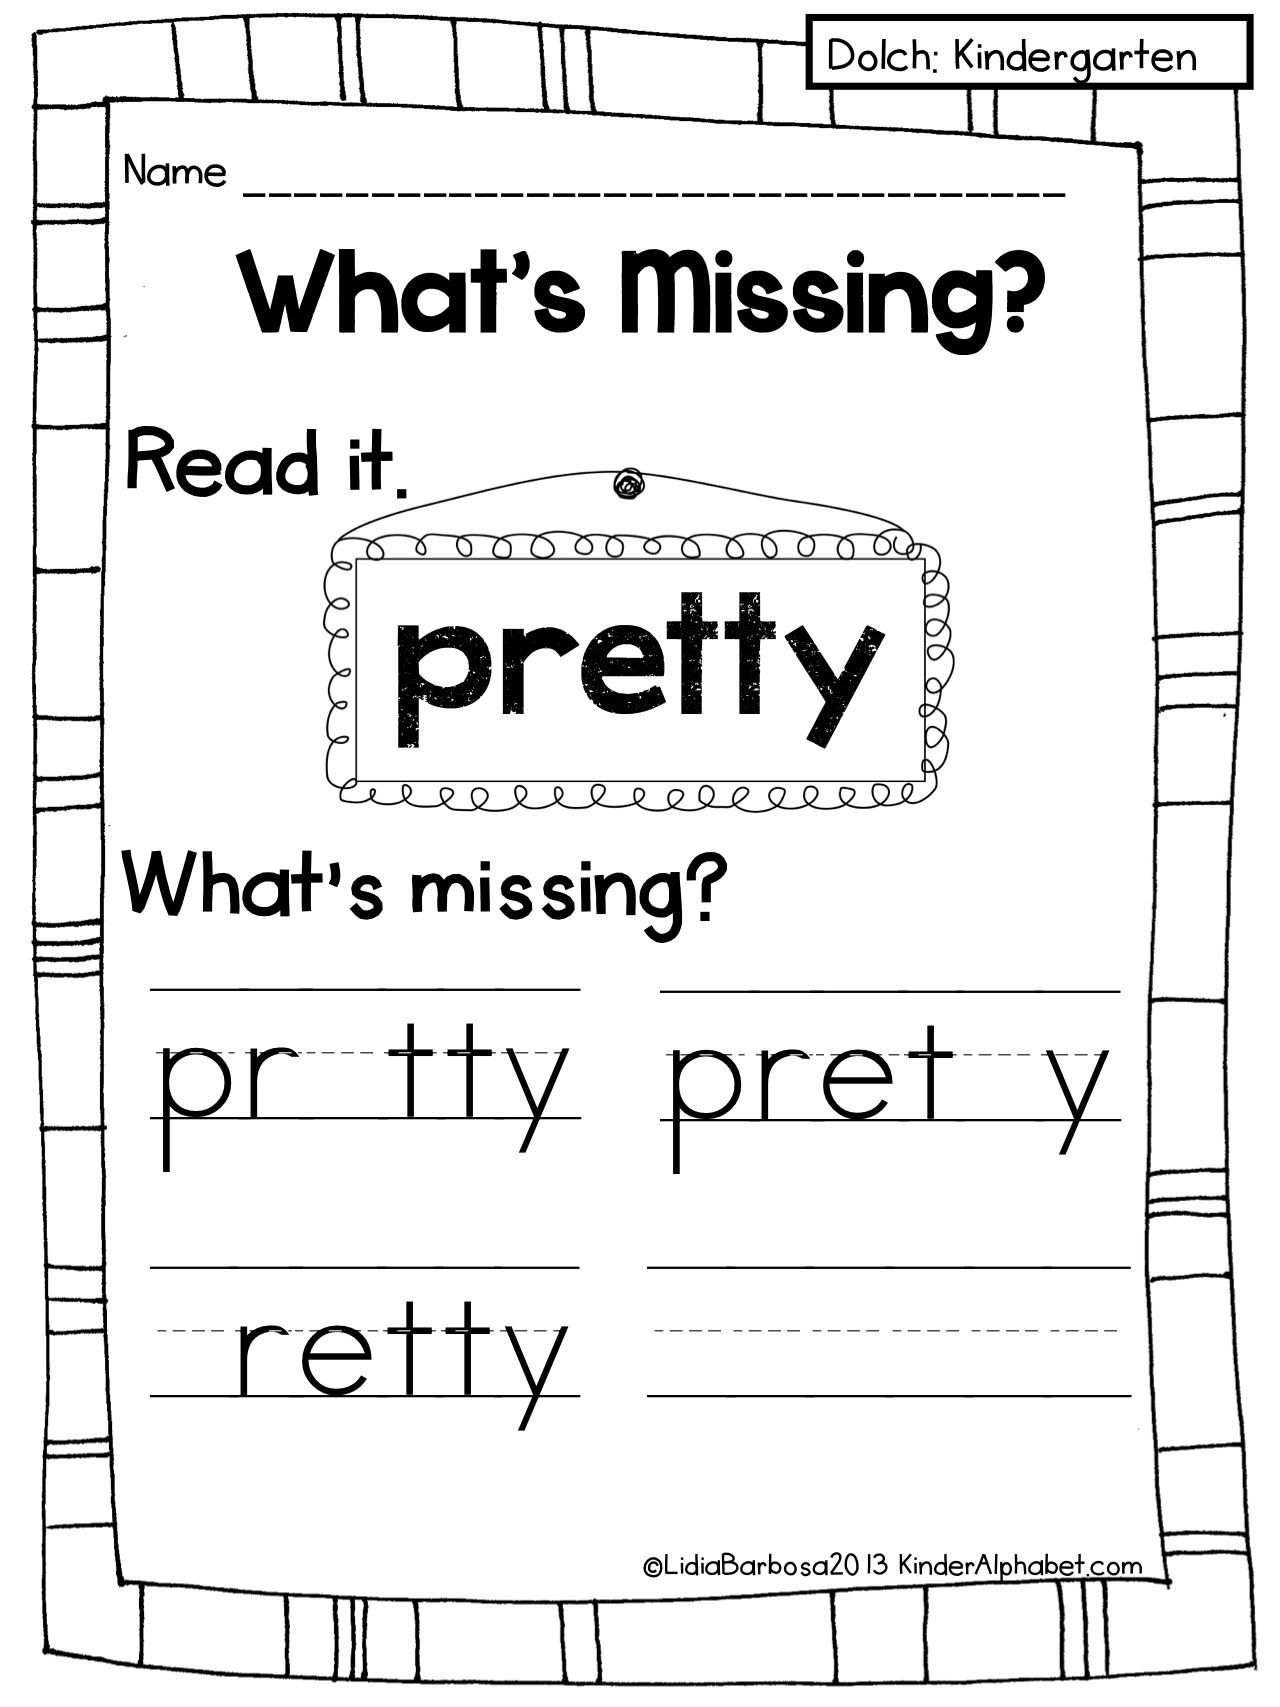 Guided Reading Ch.4 Early Guided Reading (With images